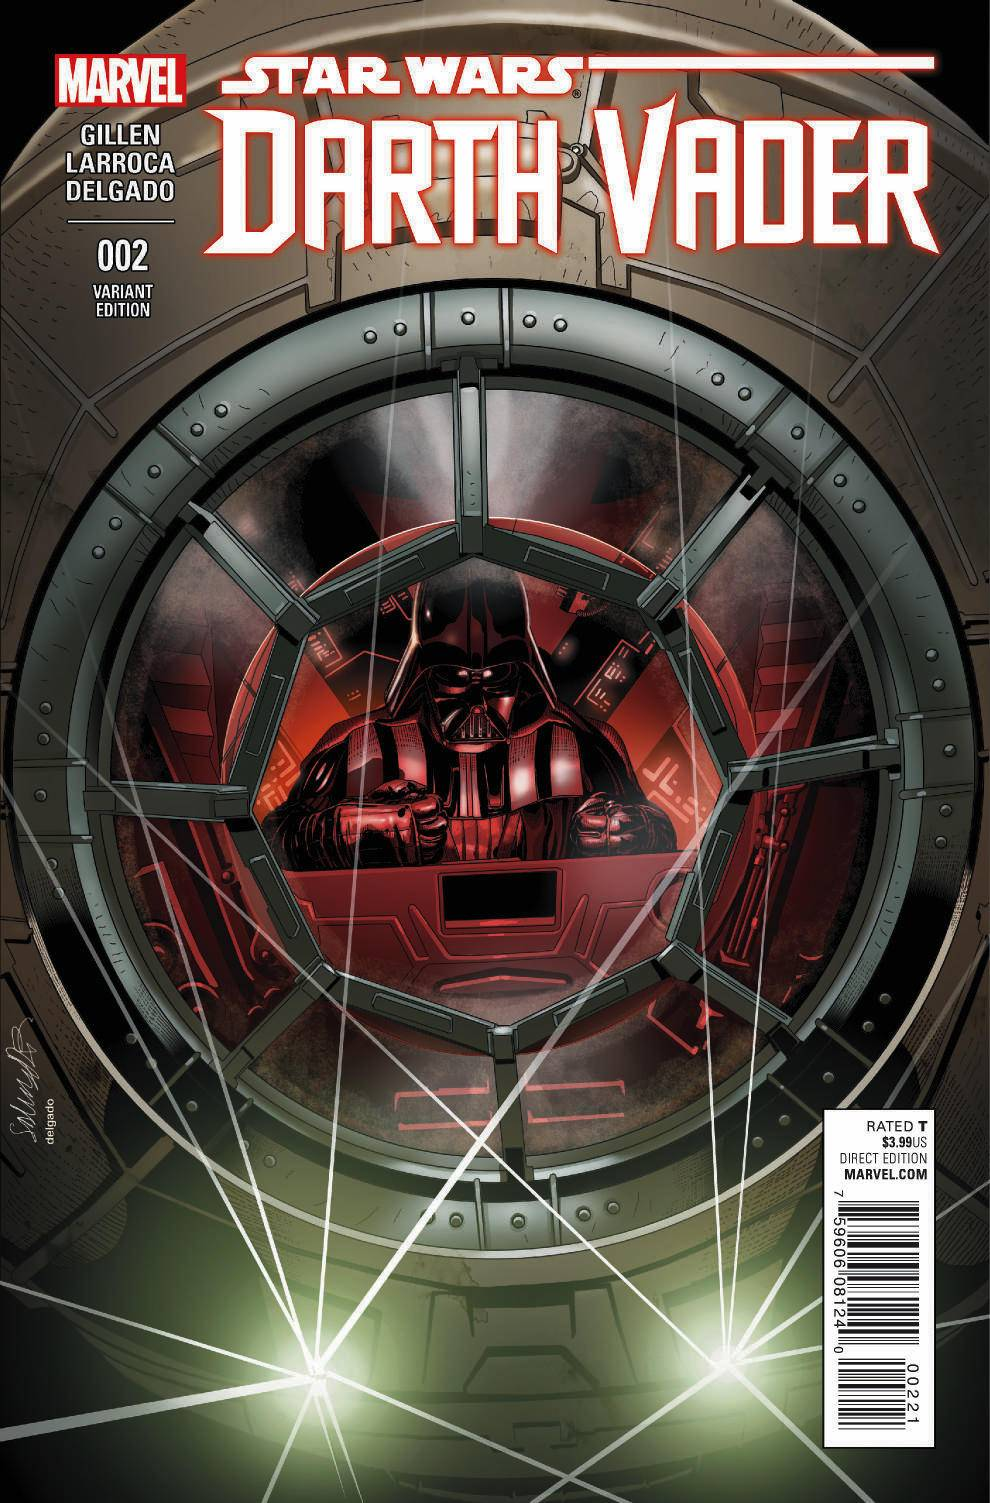 Star_Wars_Darth_Vader_Vol_1_2_Salvador_Larroca_Variant.jpg